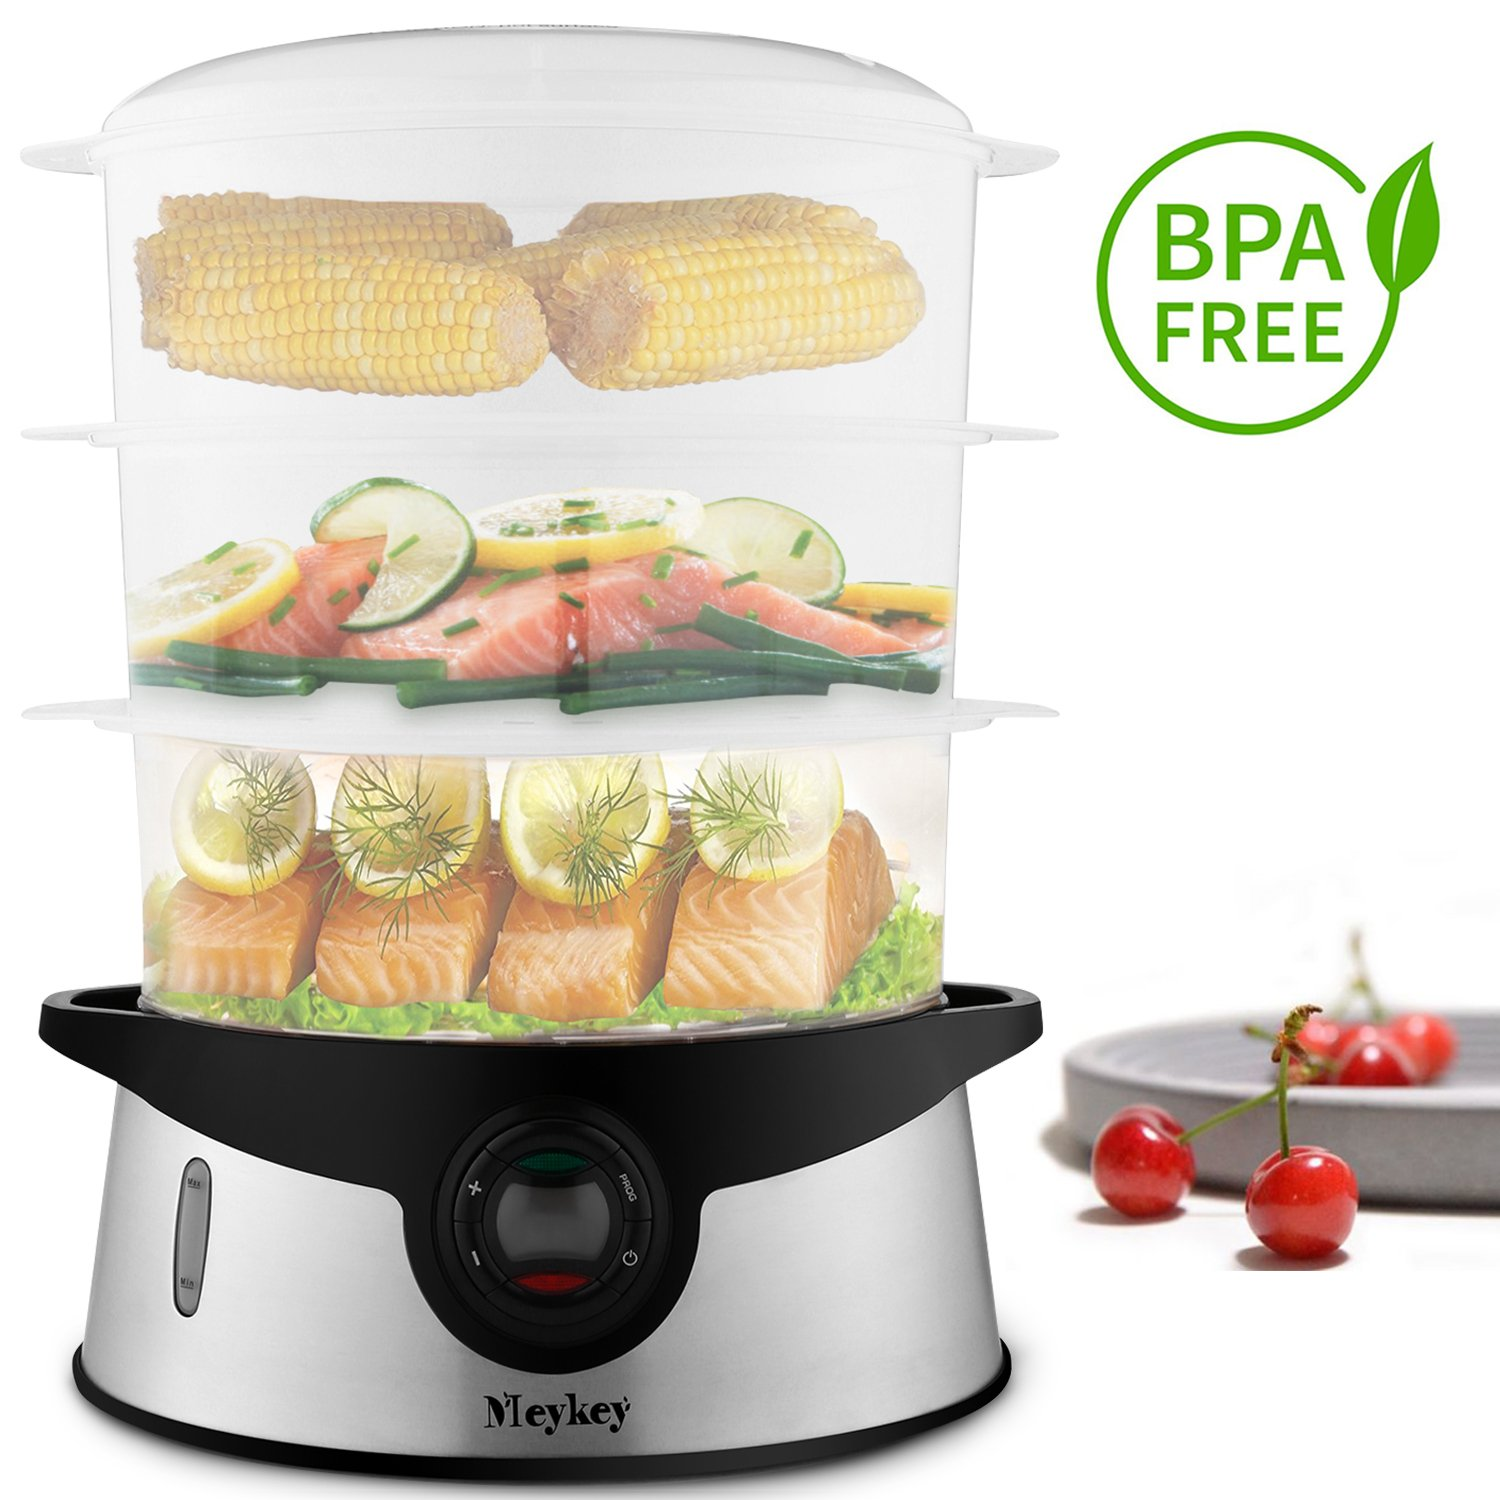 9.5 Quart Food Steamer BPA Free with LCD Digital Display, Rendio 3 Tier Stackable Baskets Vegetable Steamer with Rice and Grains Tray, Electric Steamer 800W Fast Heat up